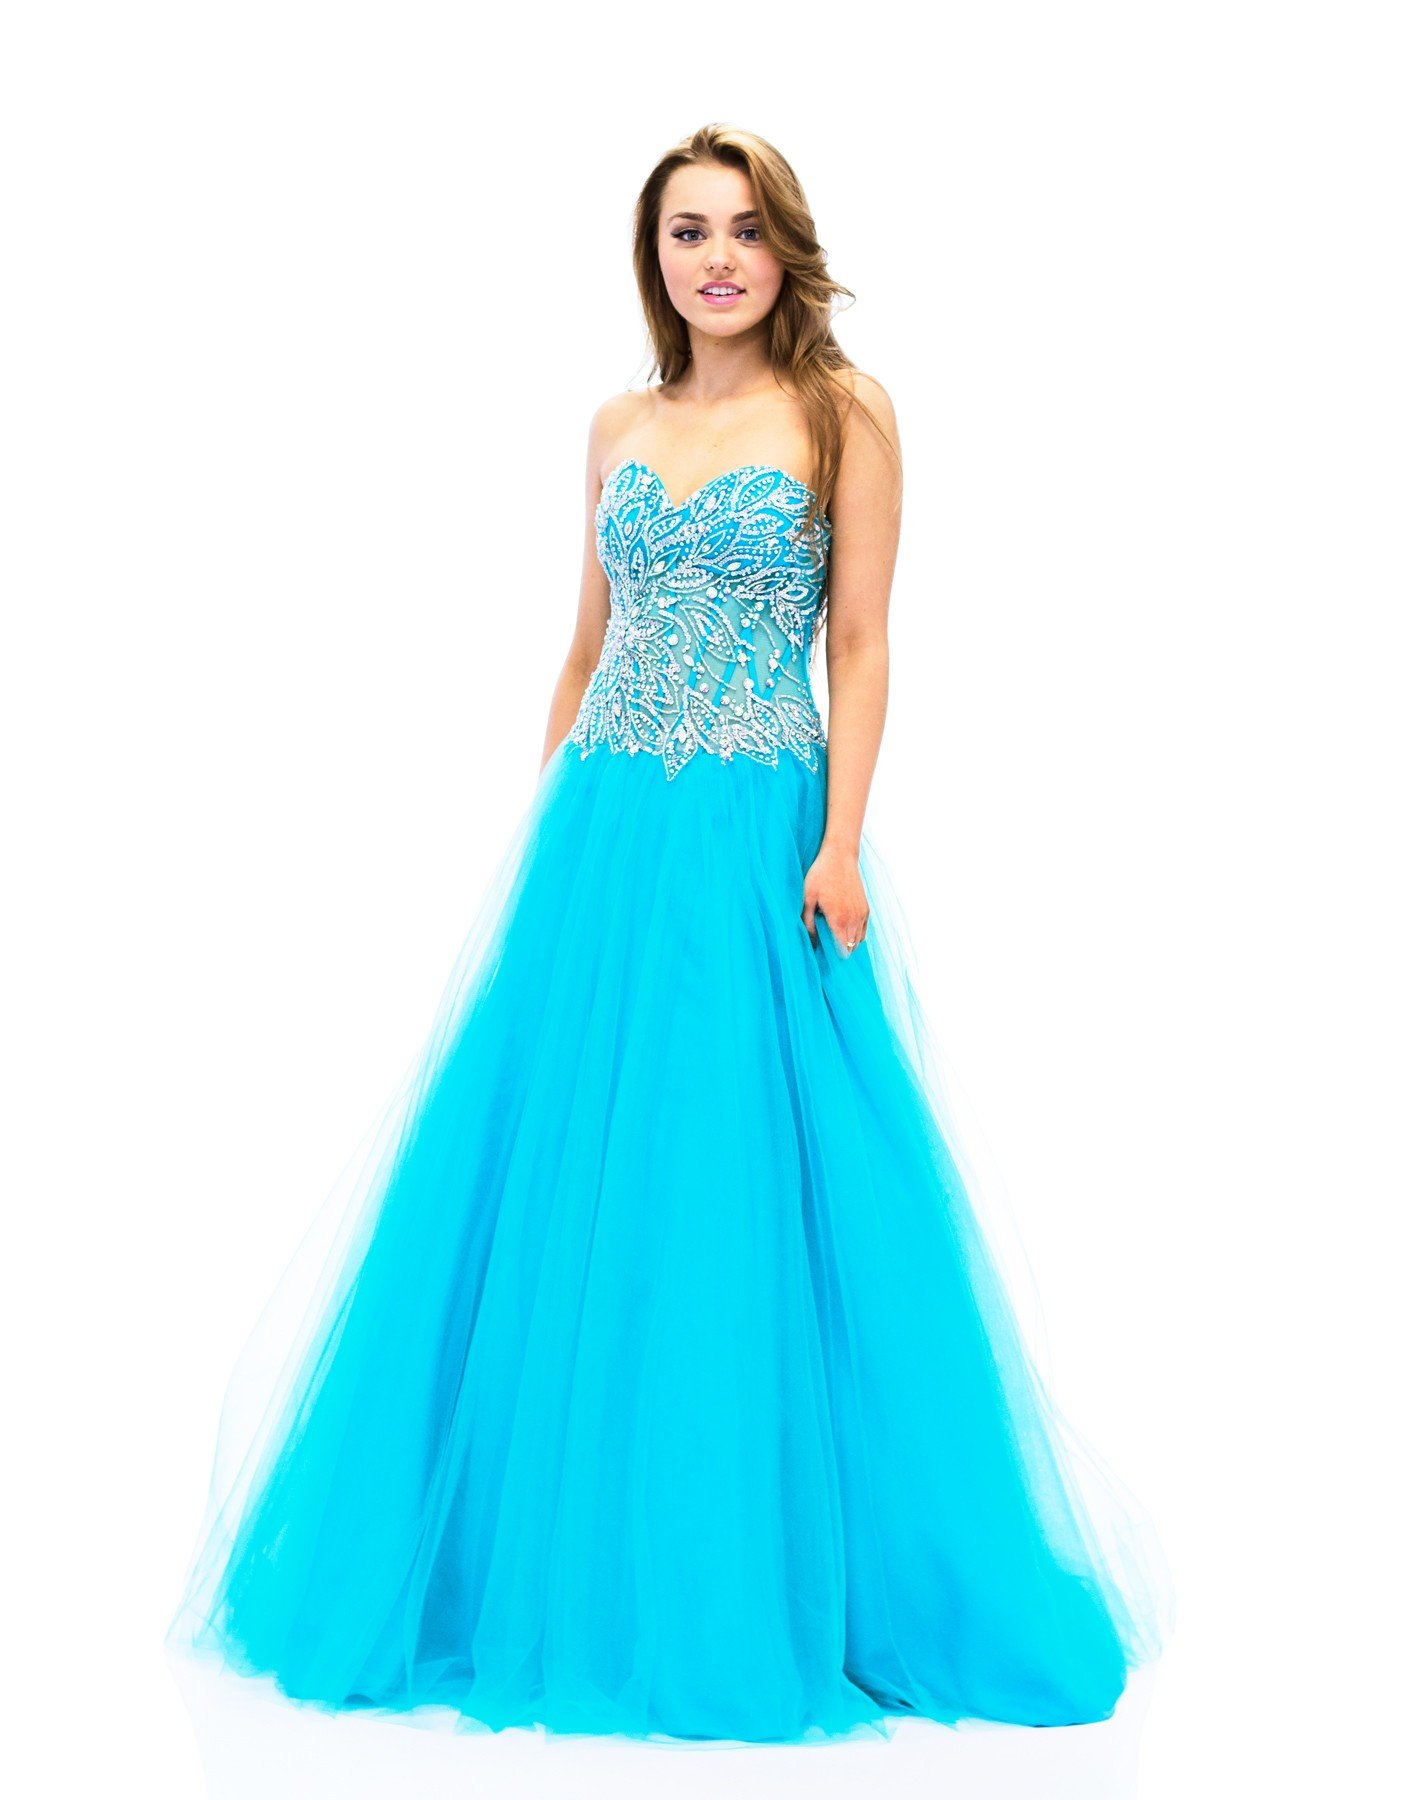 Riva Designs Blue Strapless Beaded Ballgown R7452